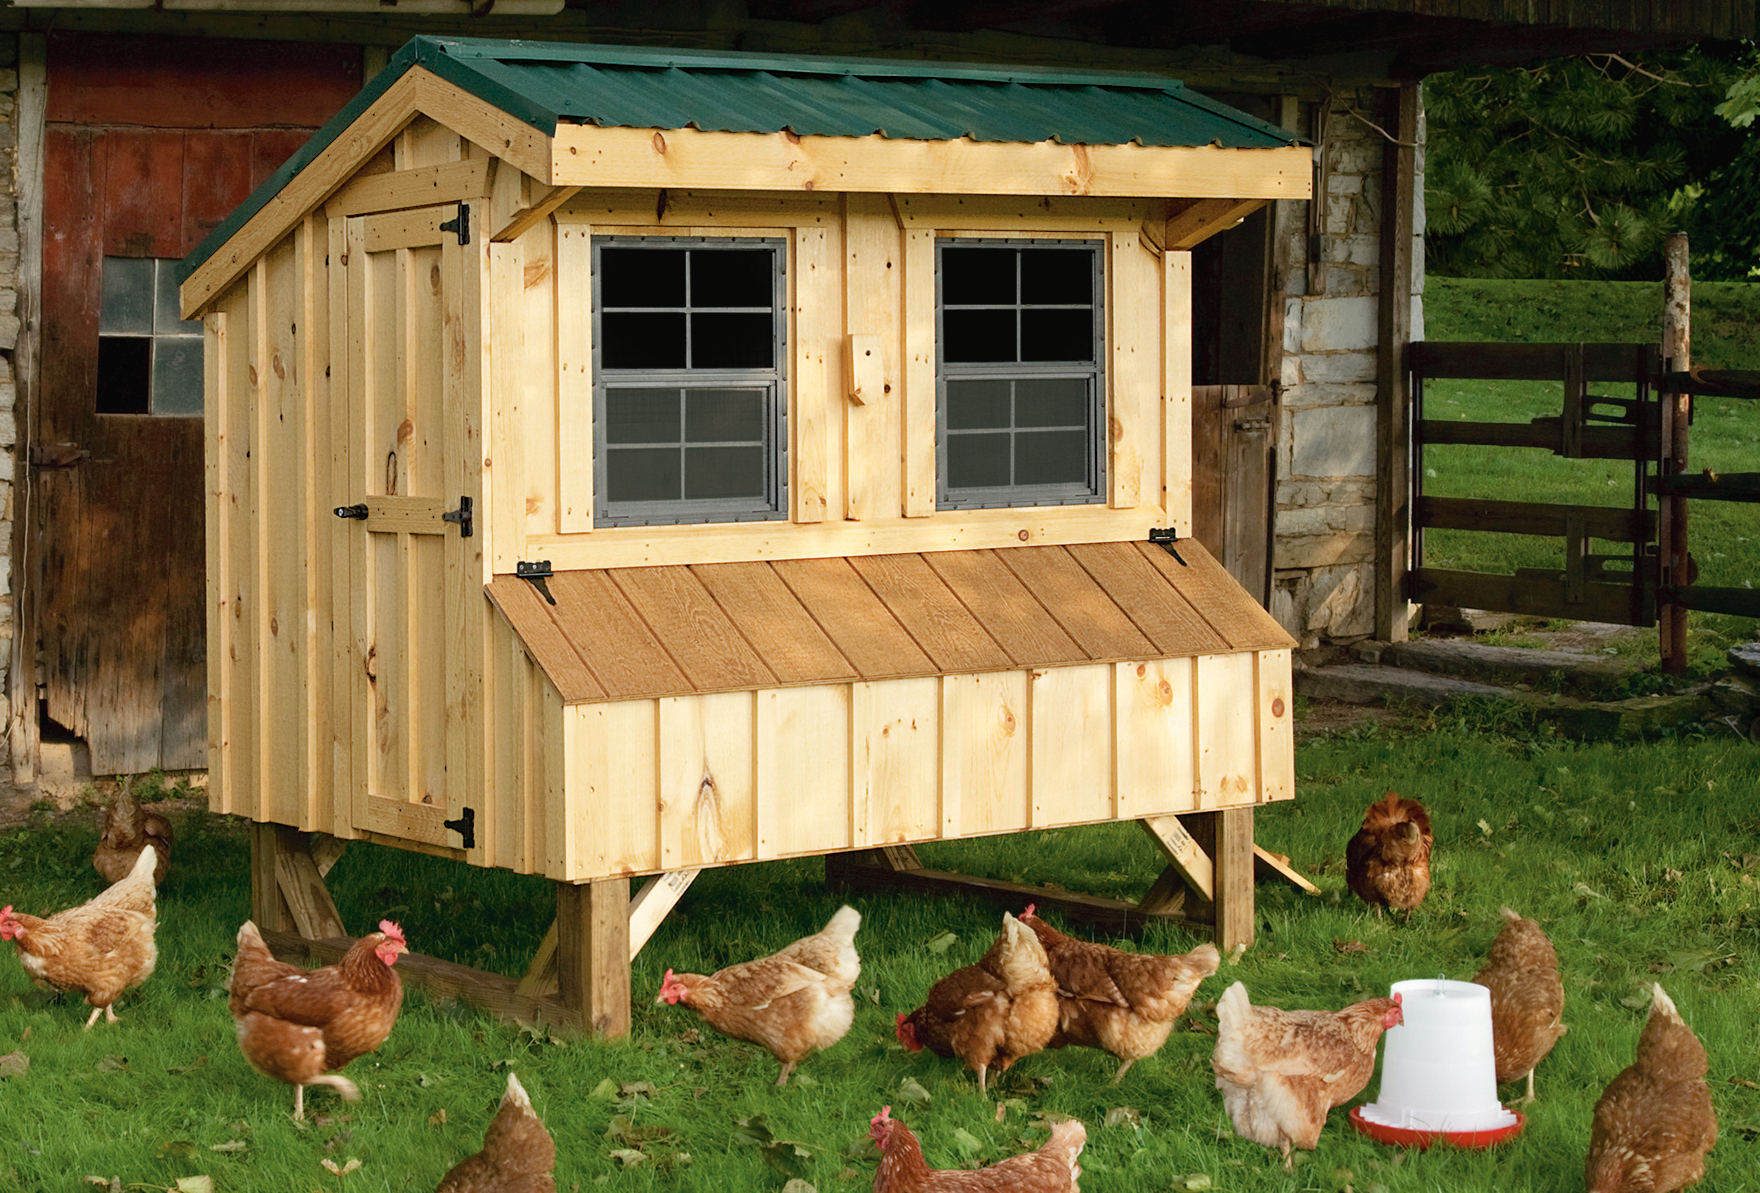 Handmade amish chicken coop barn hosue in oneonta ny for Chicken coop size for 6 chickens